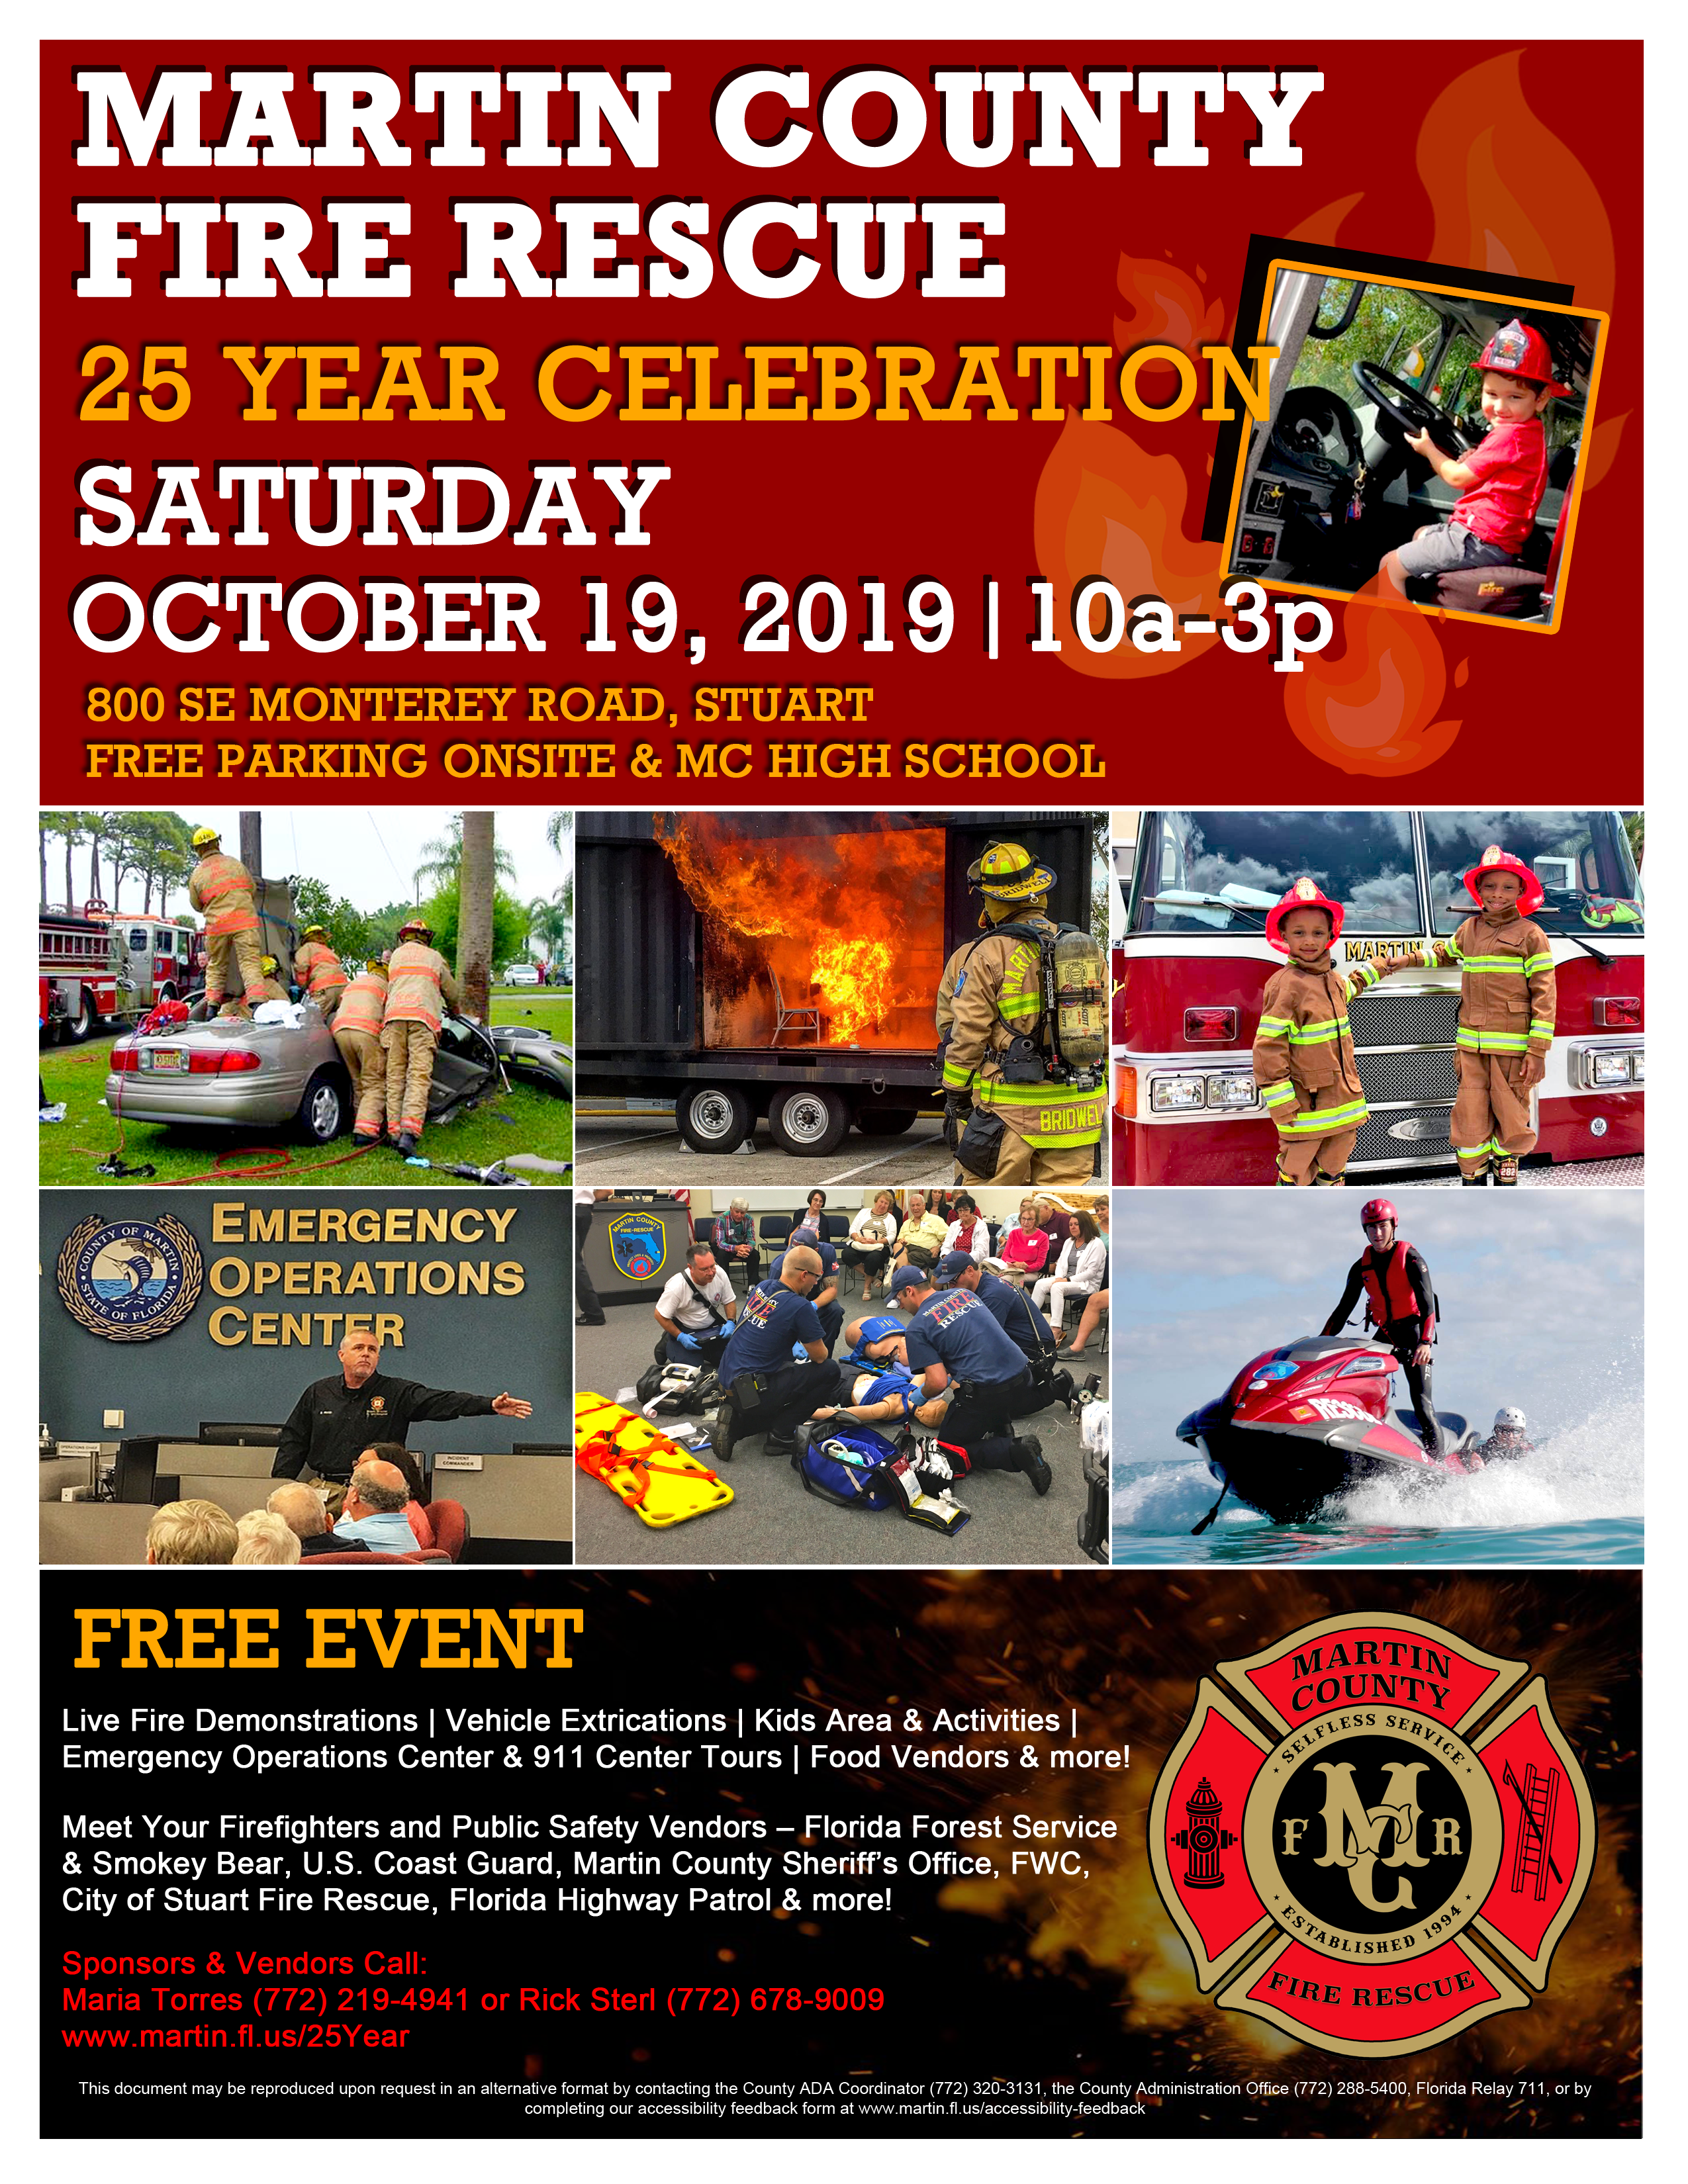 Martin County Fire Rescue 25 Year Celebration Saturday, October 19, 2019 from 10 a.m. to 3 p.m. and includes a collage of firefighter images